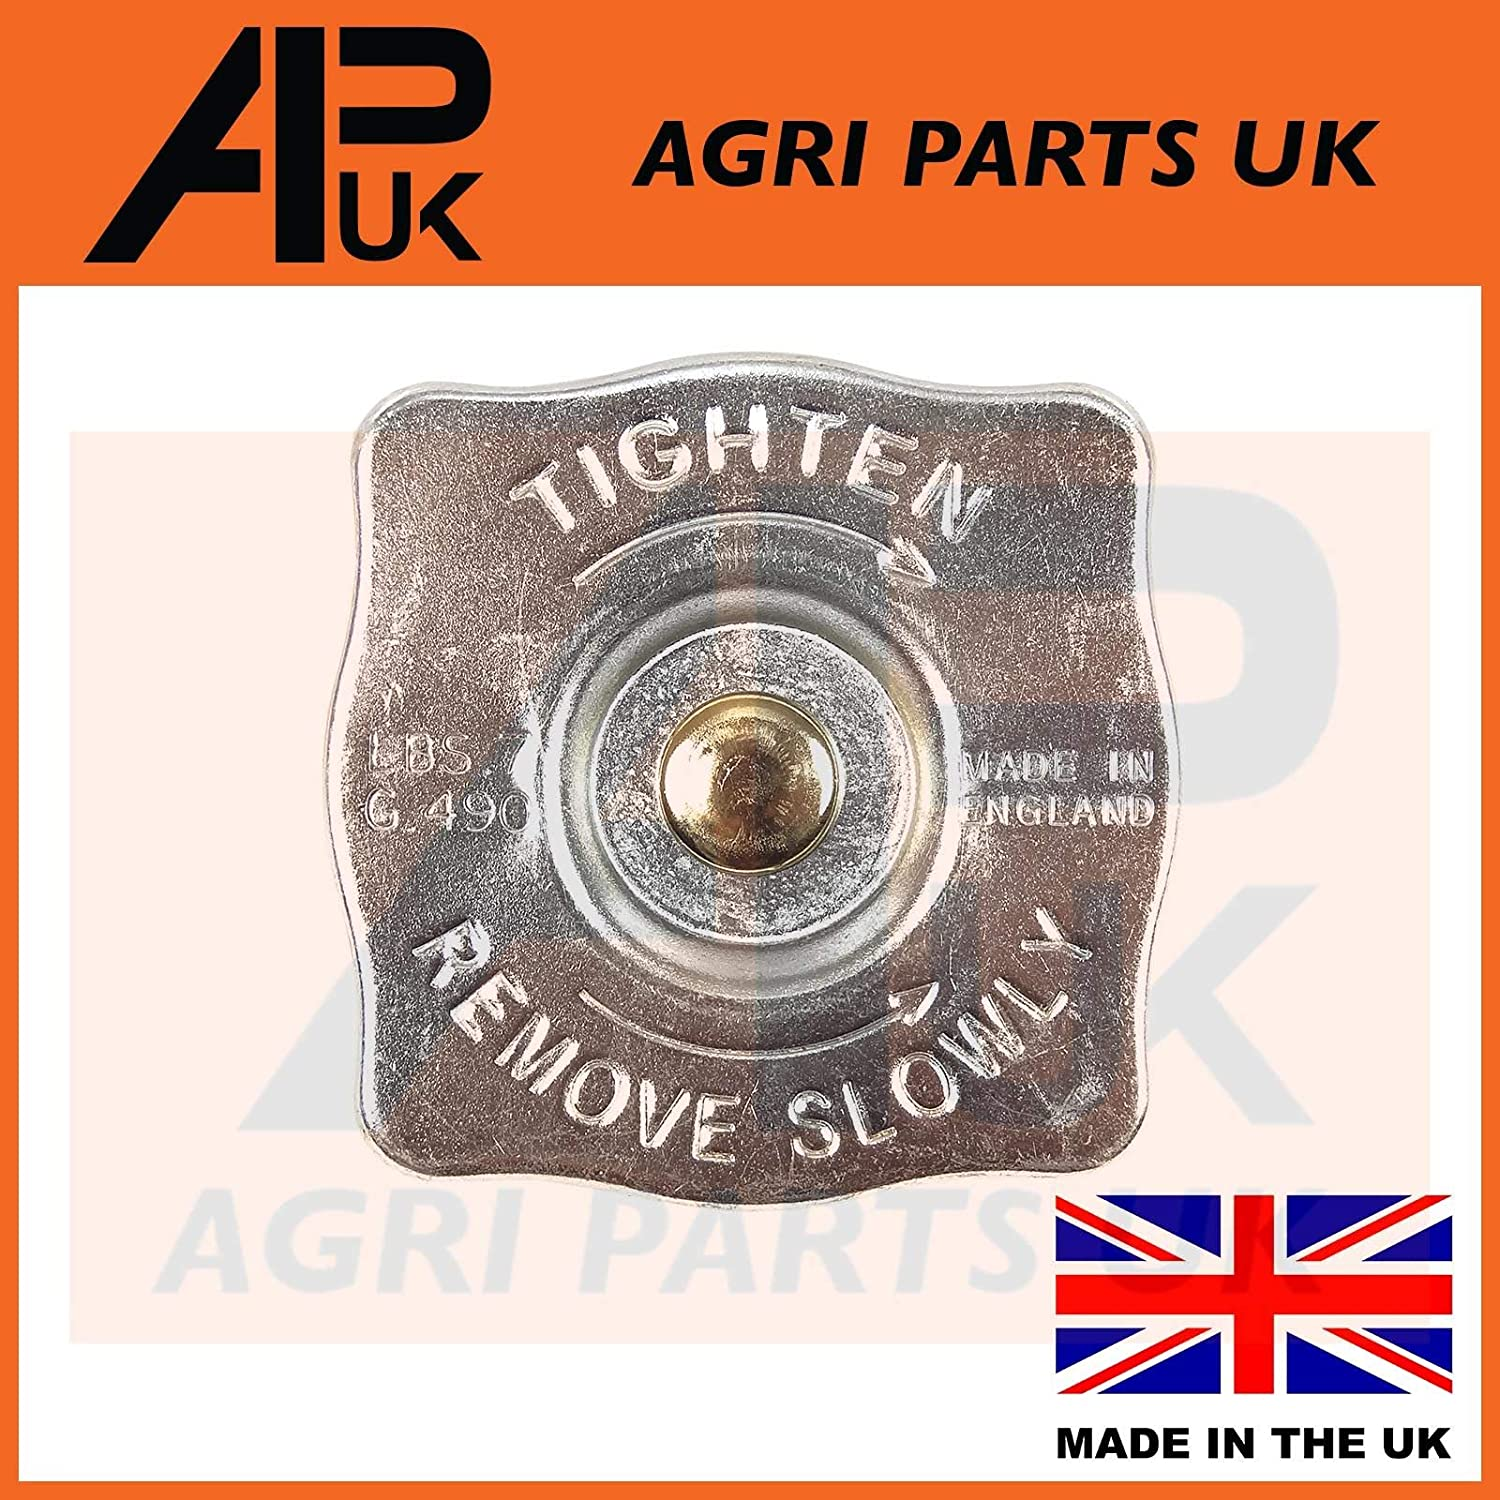 APUK Square Radiator Cap Compatible with Ford 2000 3000 4000 4600 5000 5610 6610 7610 TW Tractor